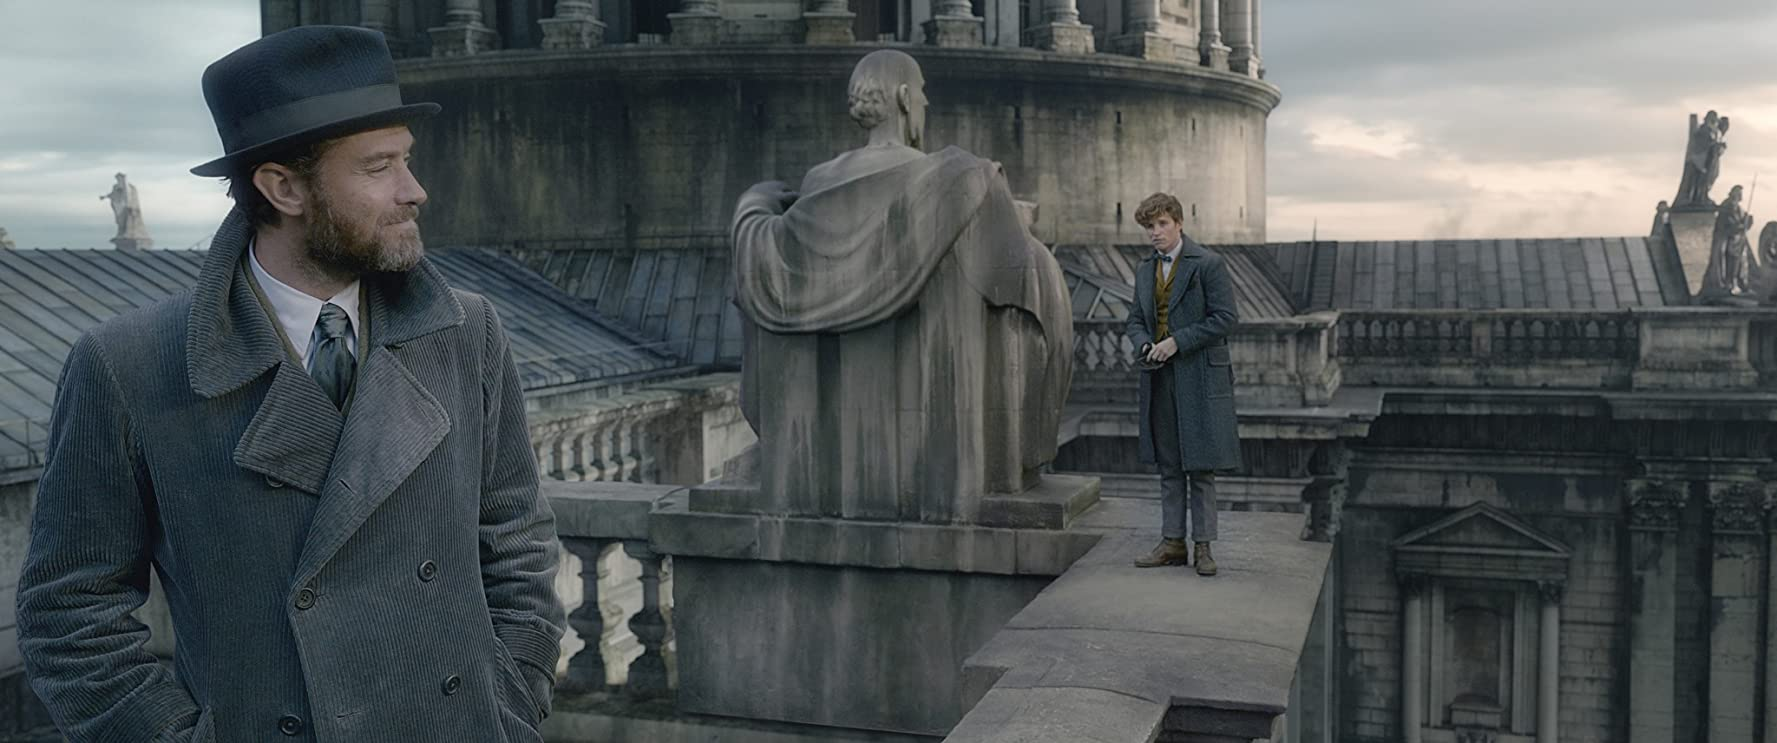 Jude Law and Eddie Redmayne in Fantastic Beasts: The Crimes of Grindelwald (2018)